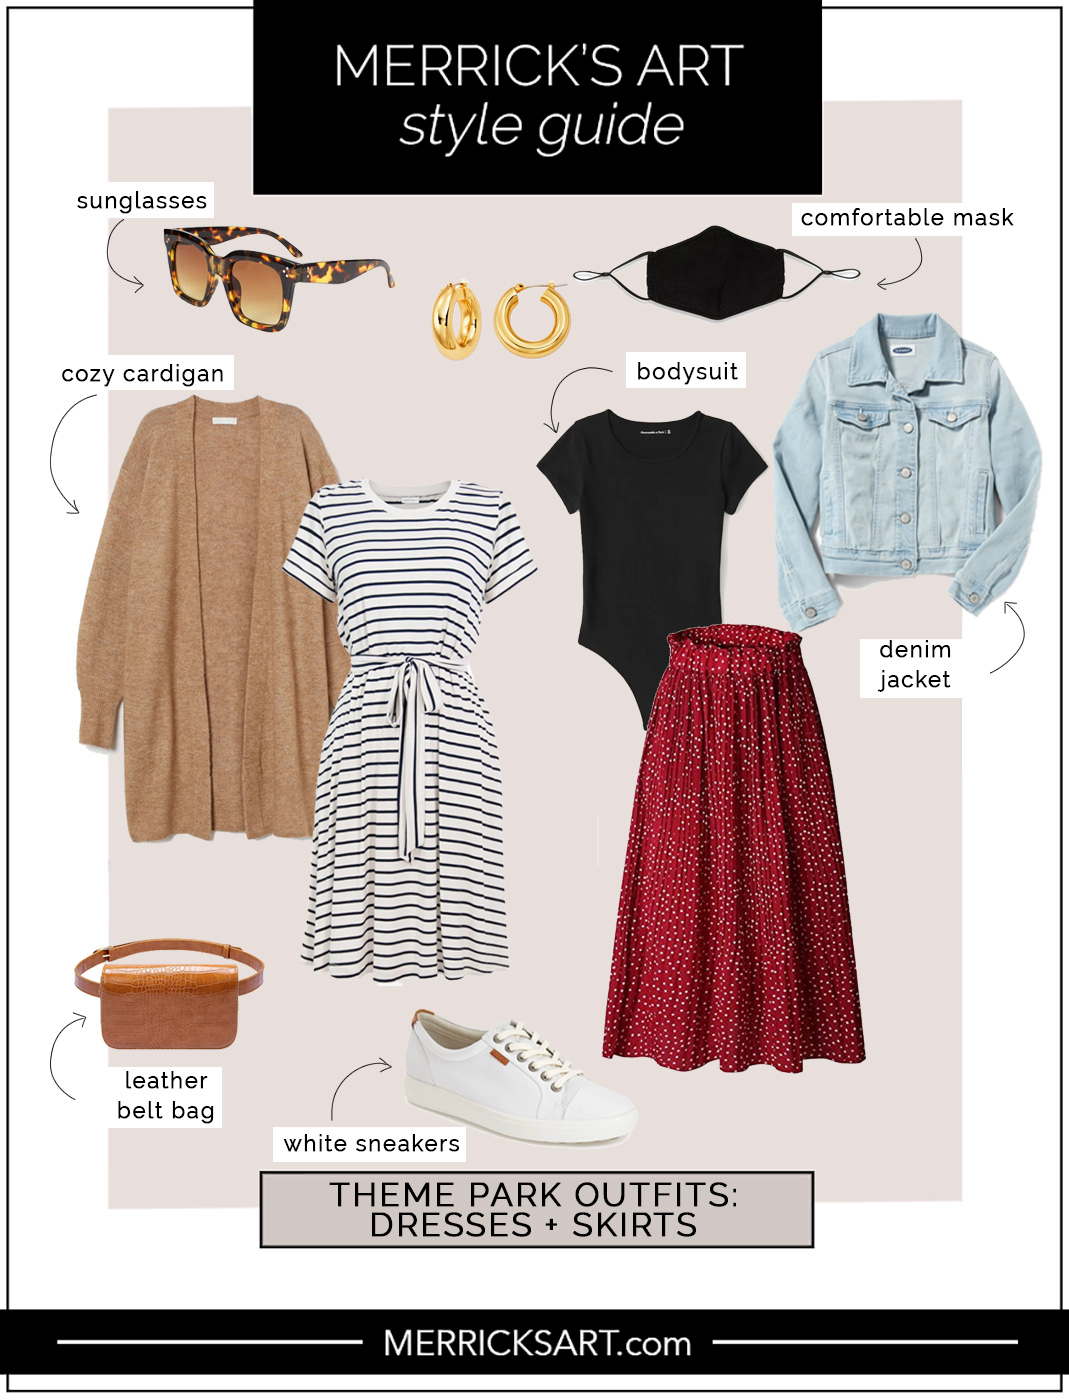 theme park outfits